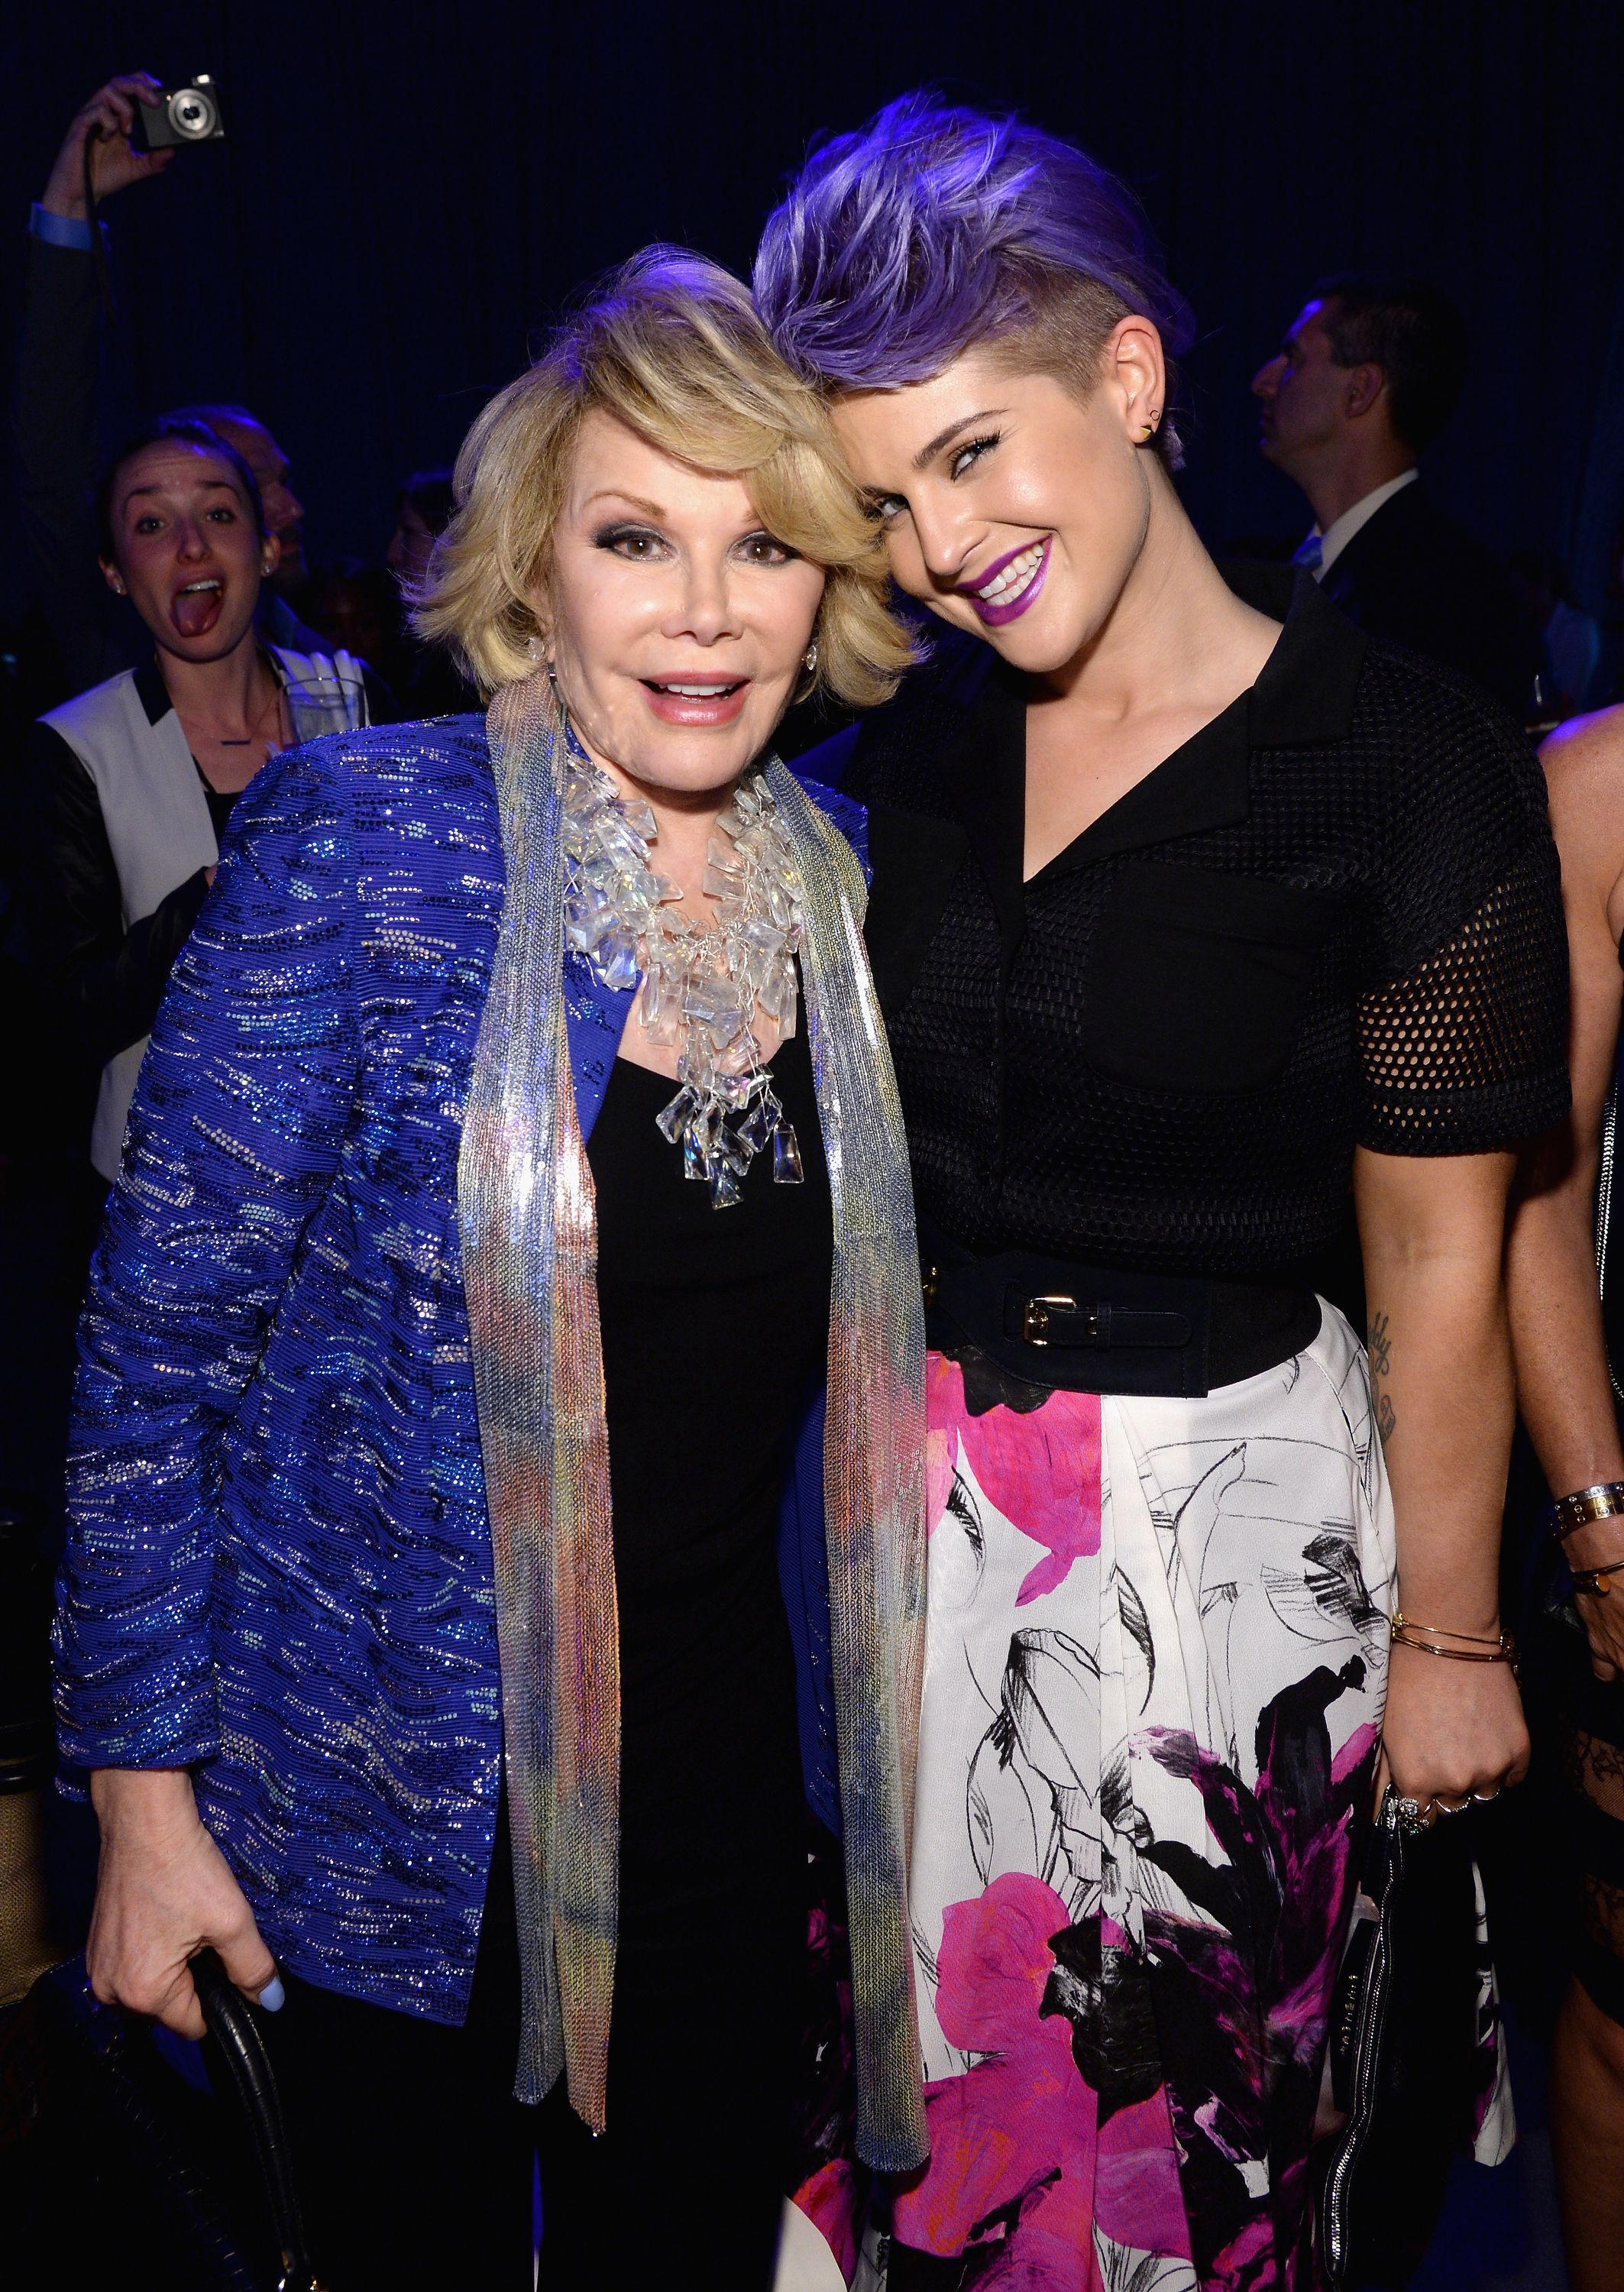 """Joan Rivers and Kelly Osbourne from """"Fashion Police"""" at the Javits Center in New York City on May 15, 2014   Photo: Larry Busacca/USA Network/NBCU Bank/NBCUniversal/Getty Images"""